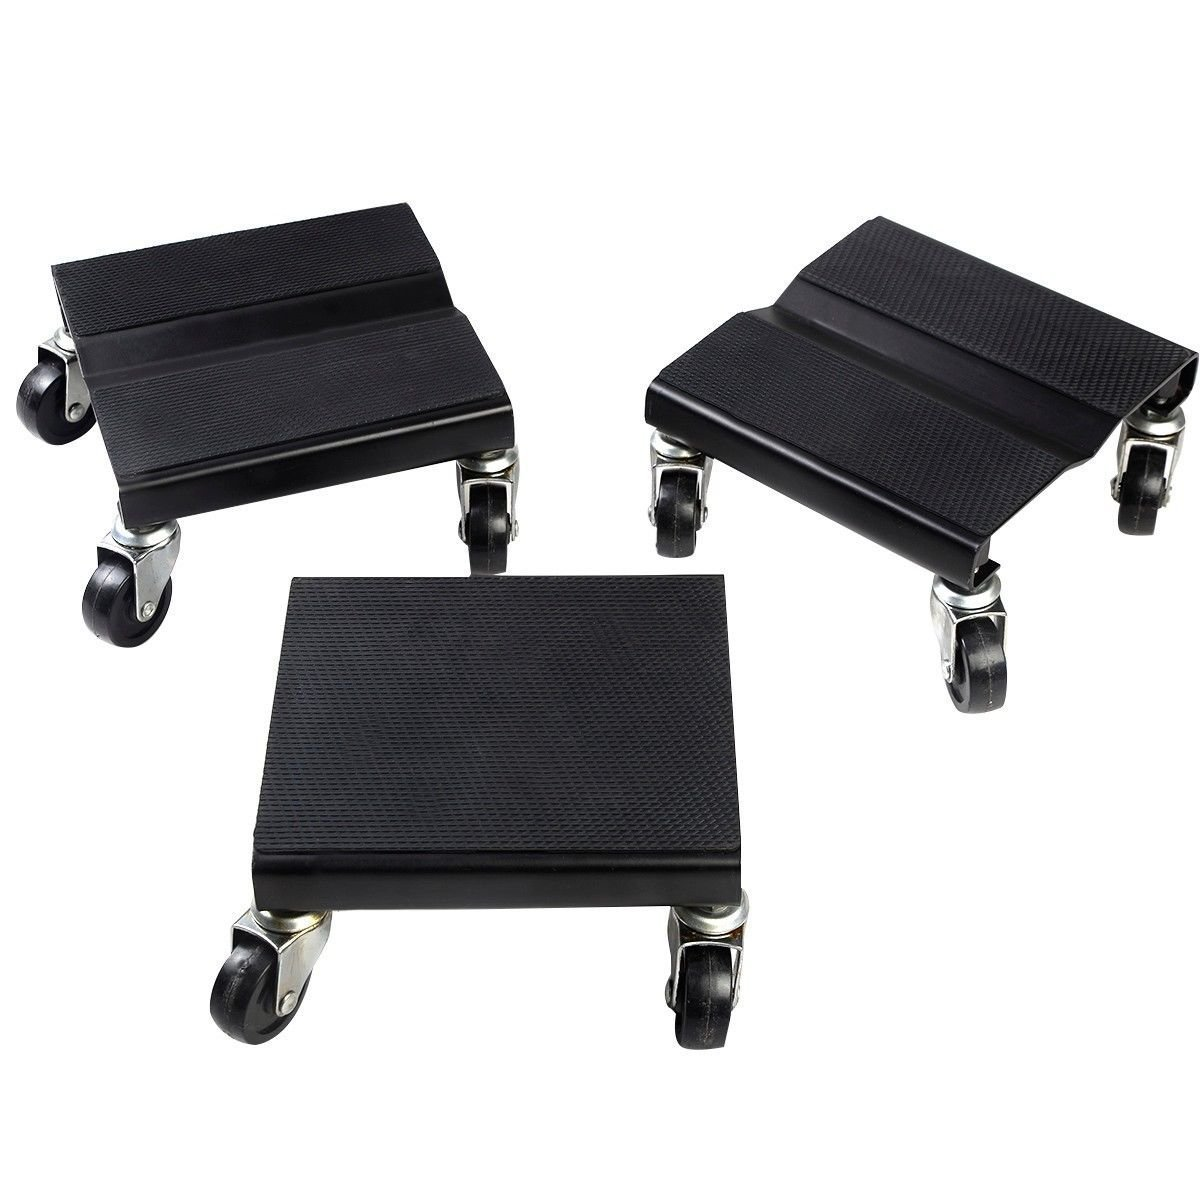 Goplus 3 PC Snowmobile Dolly Set Anti-slip Snow Mobile Moving Rollers Dollies Movers, 1500 LBS Capacity